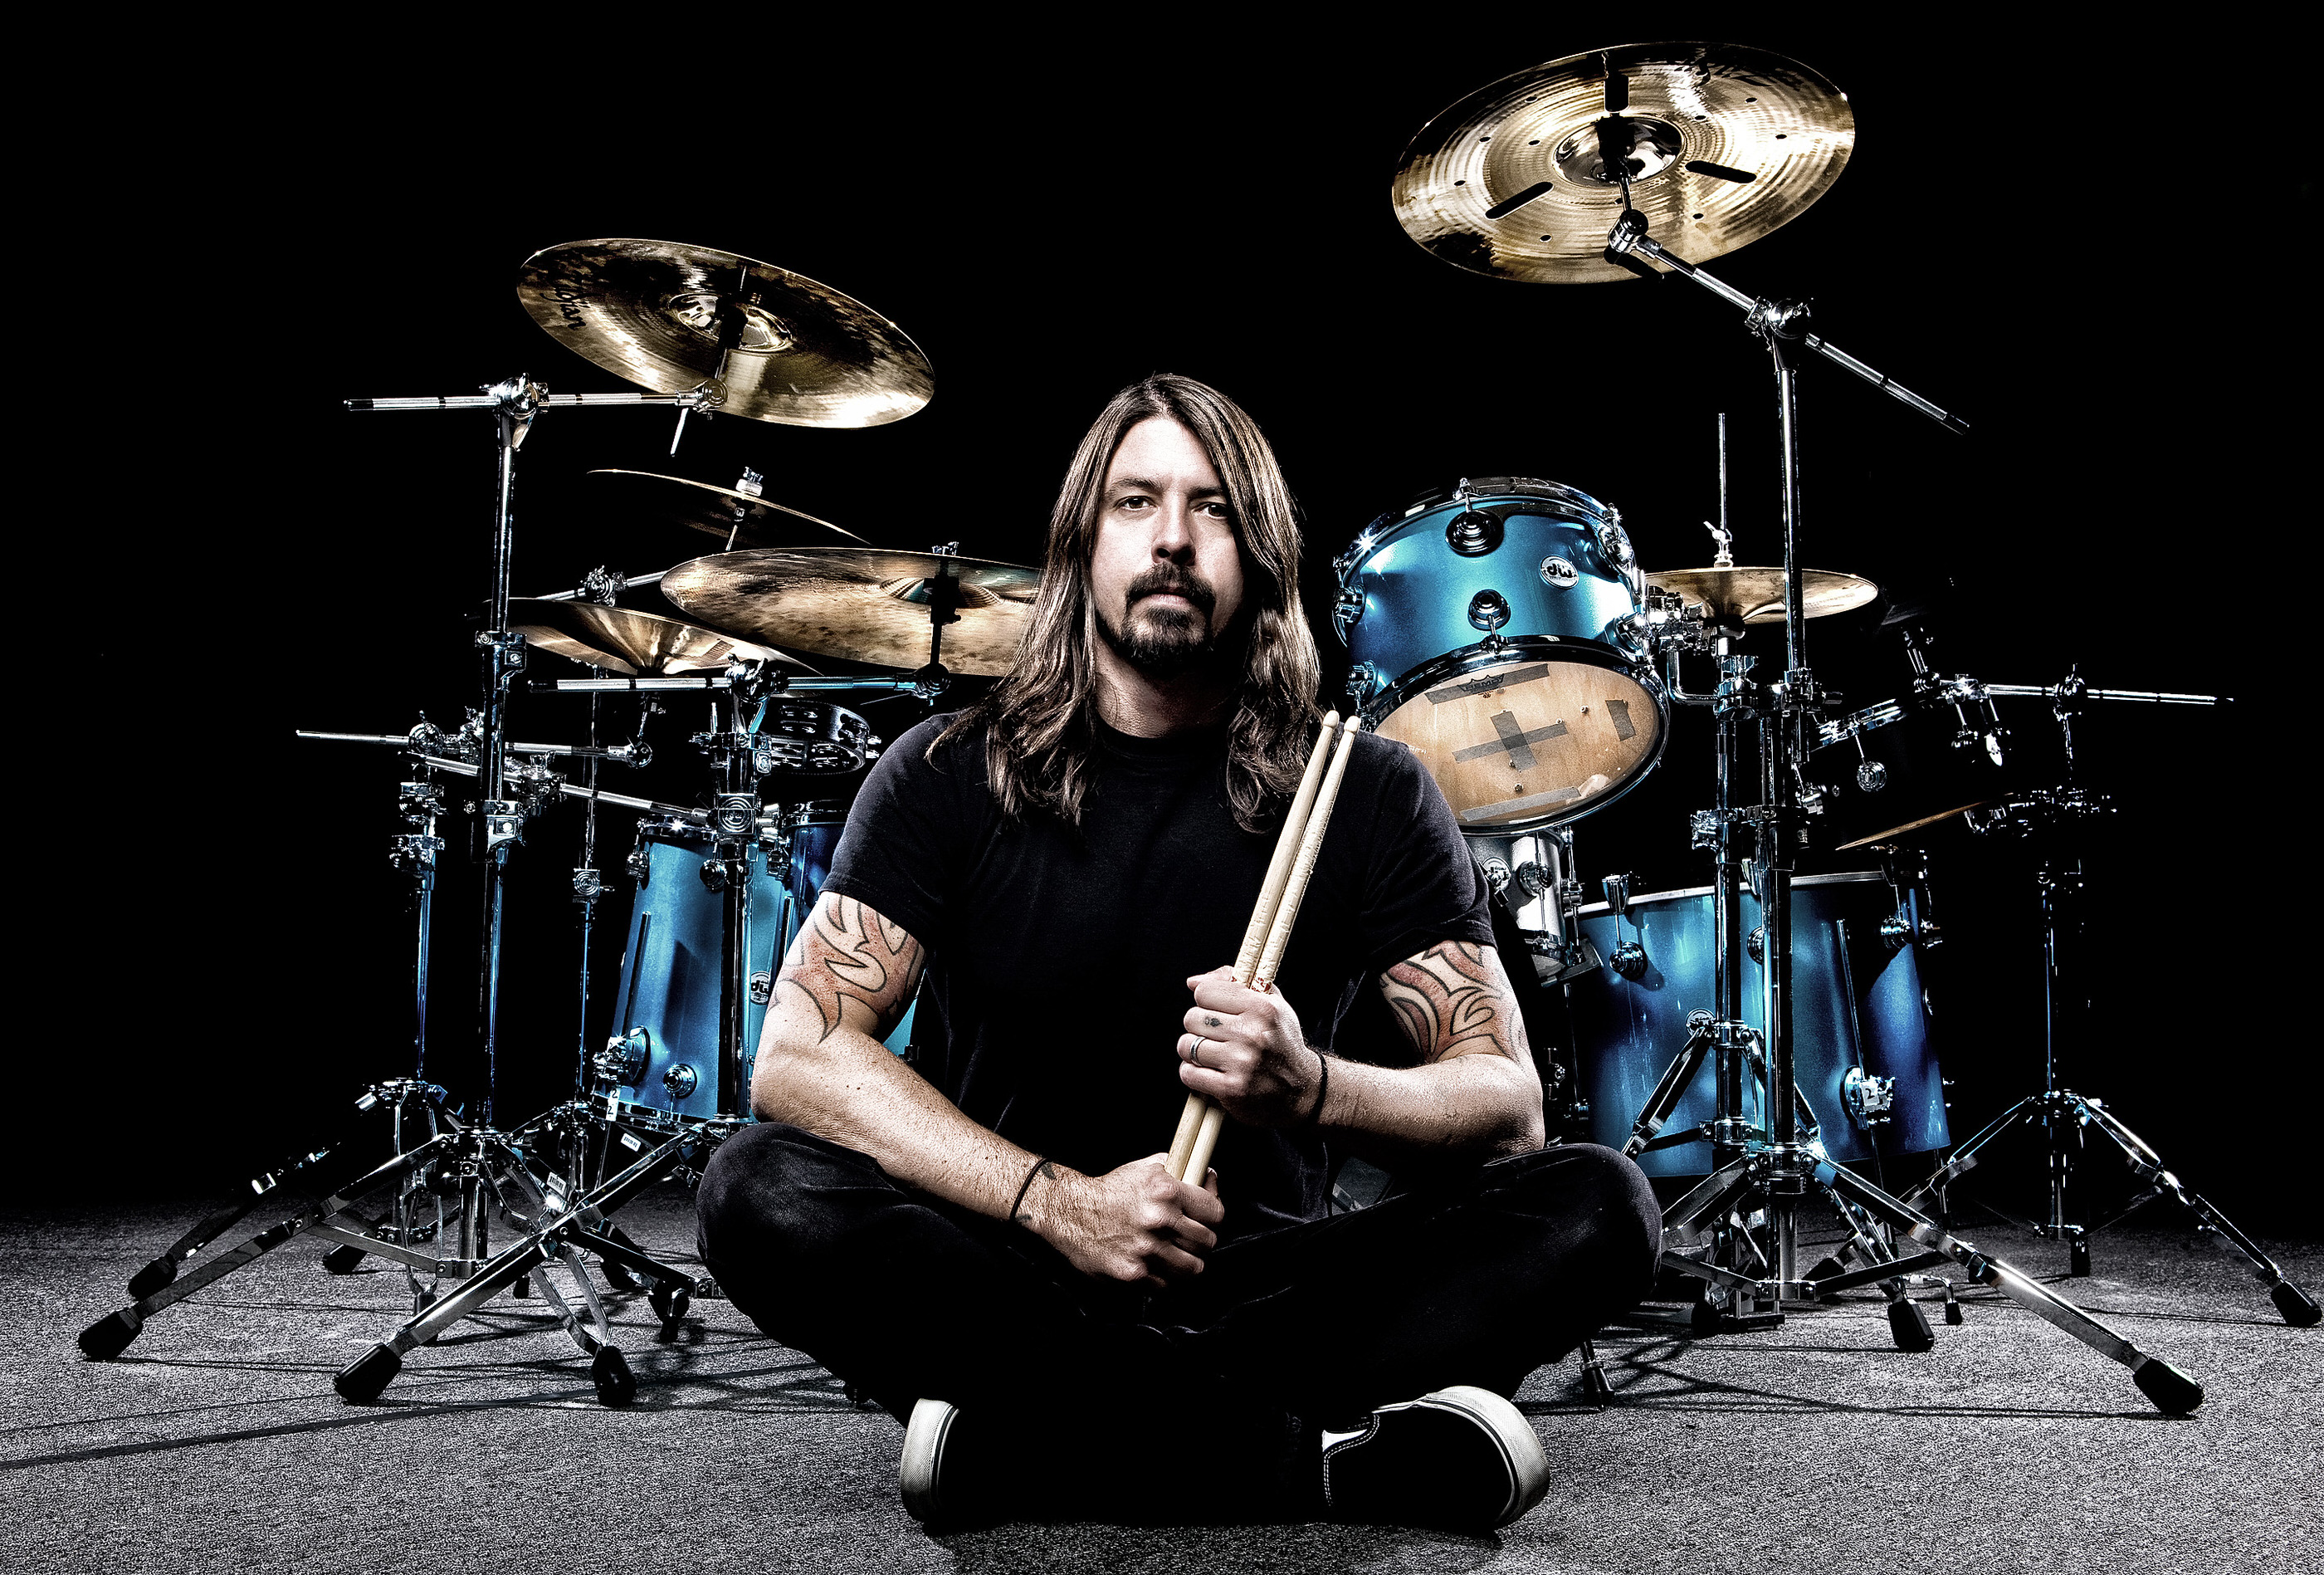 Dave Grohl Modern Drummer Photoshoot